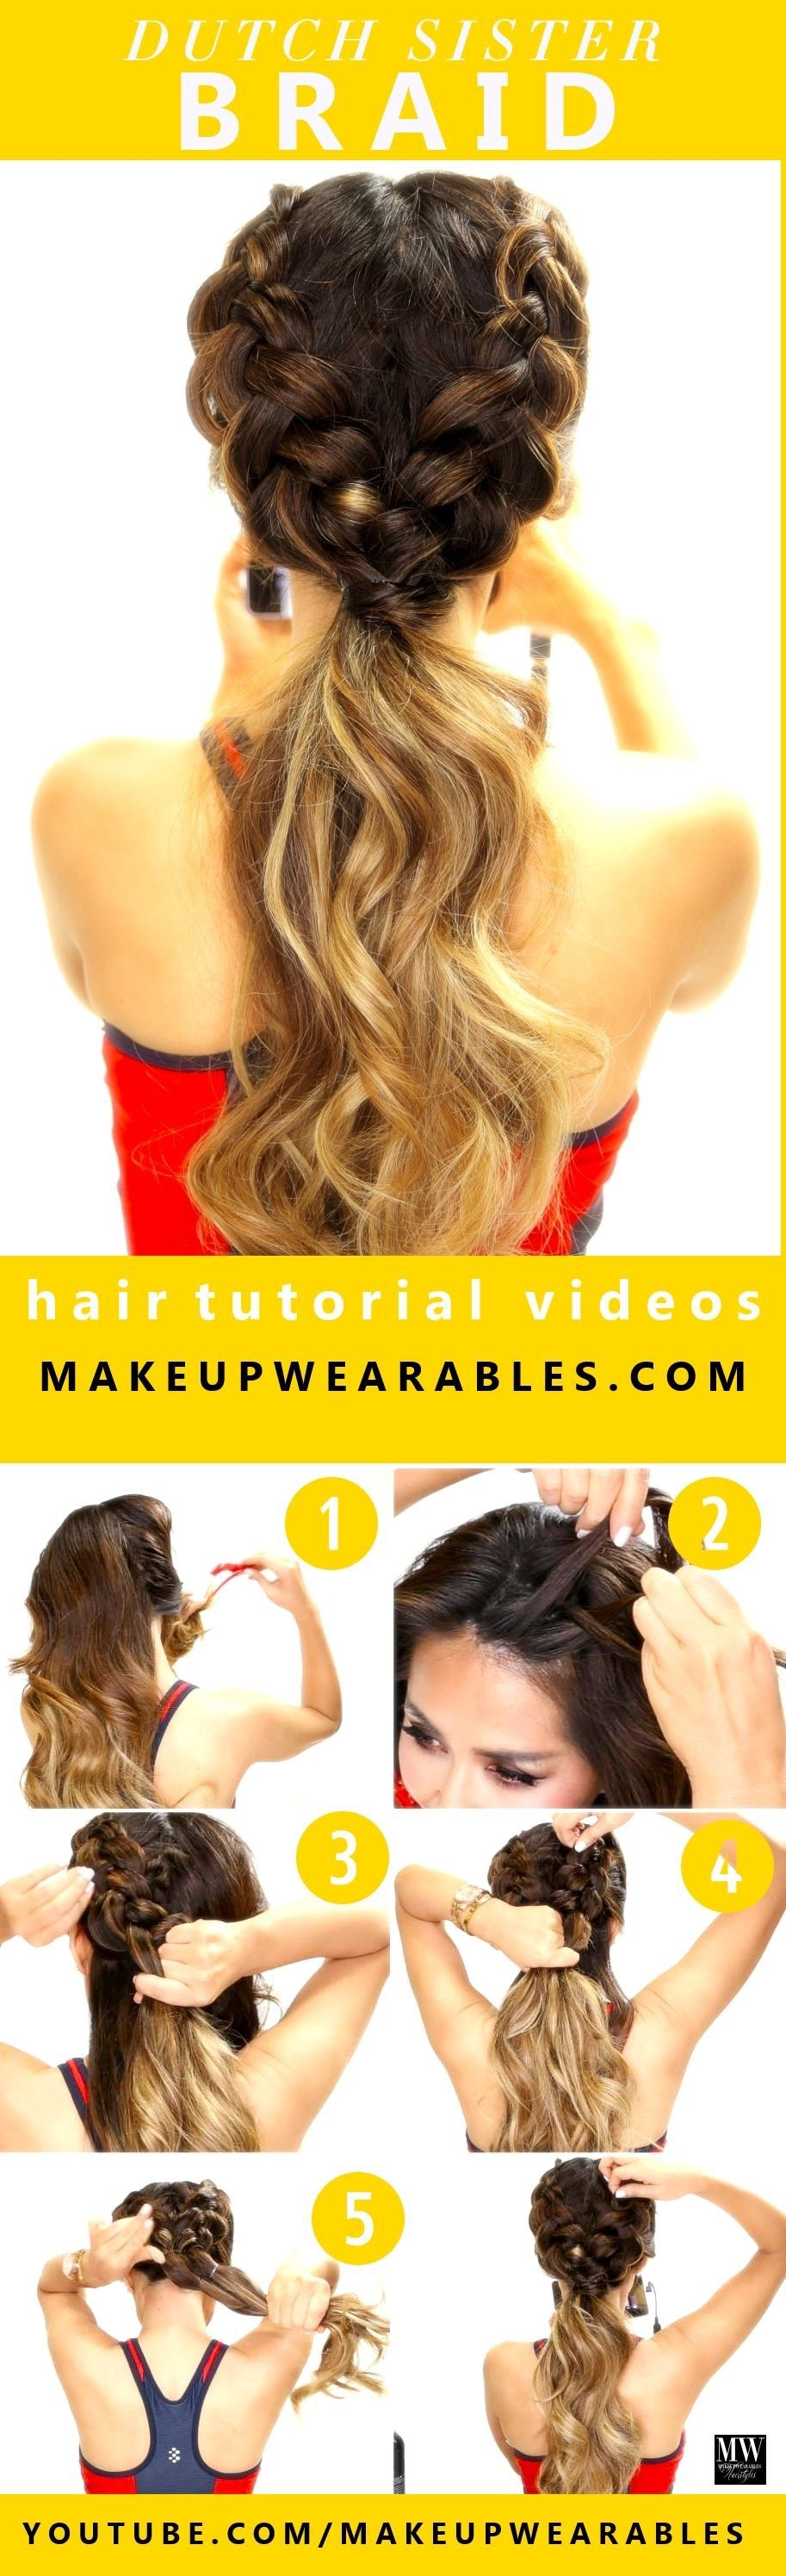 Pin by hair styling me on braids pinterest hair style hair